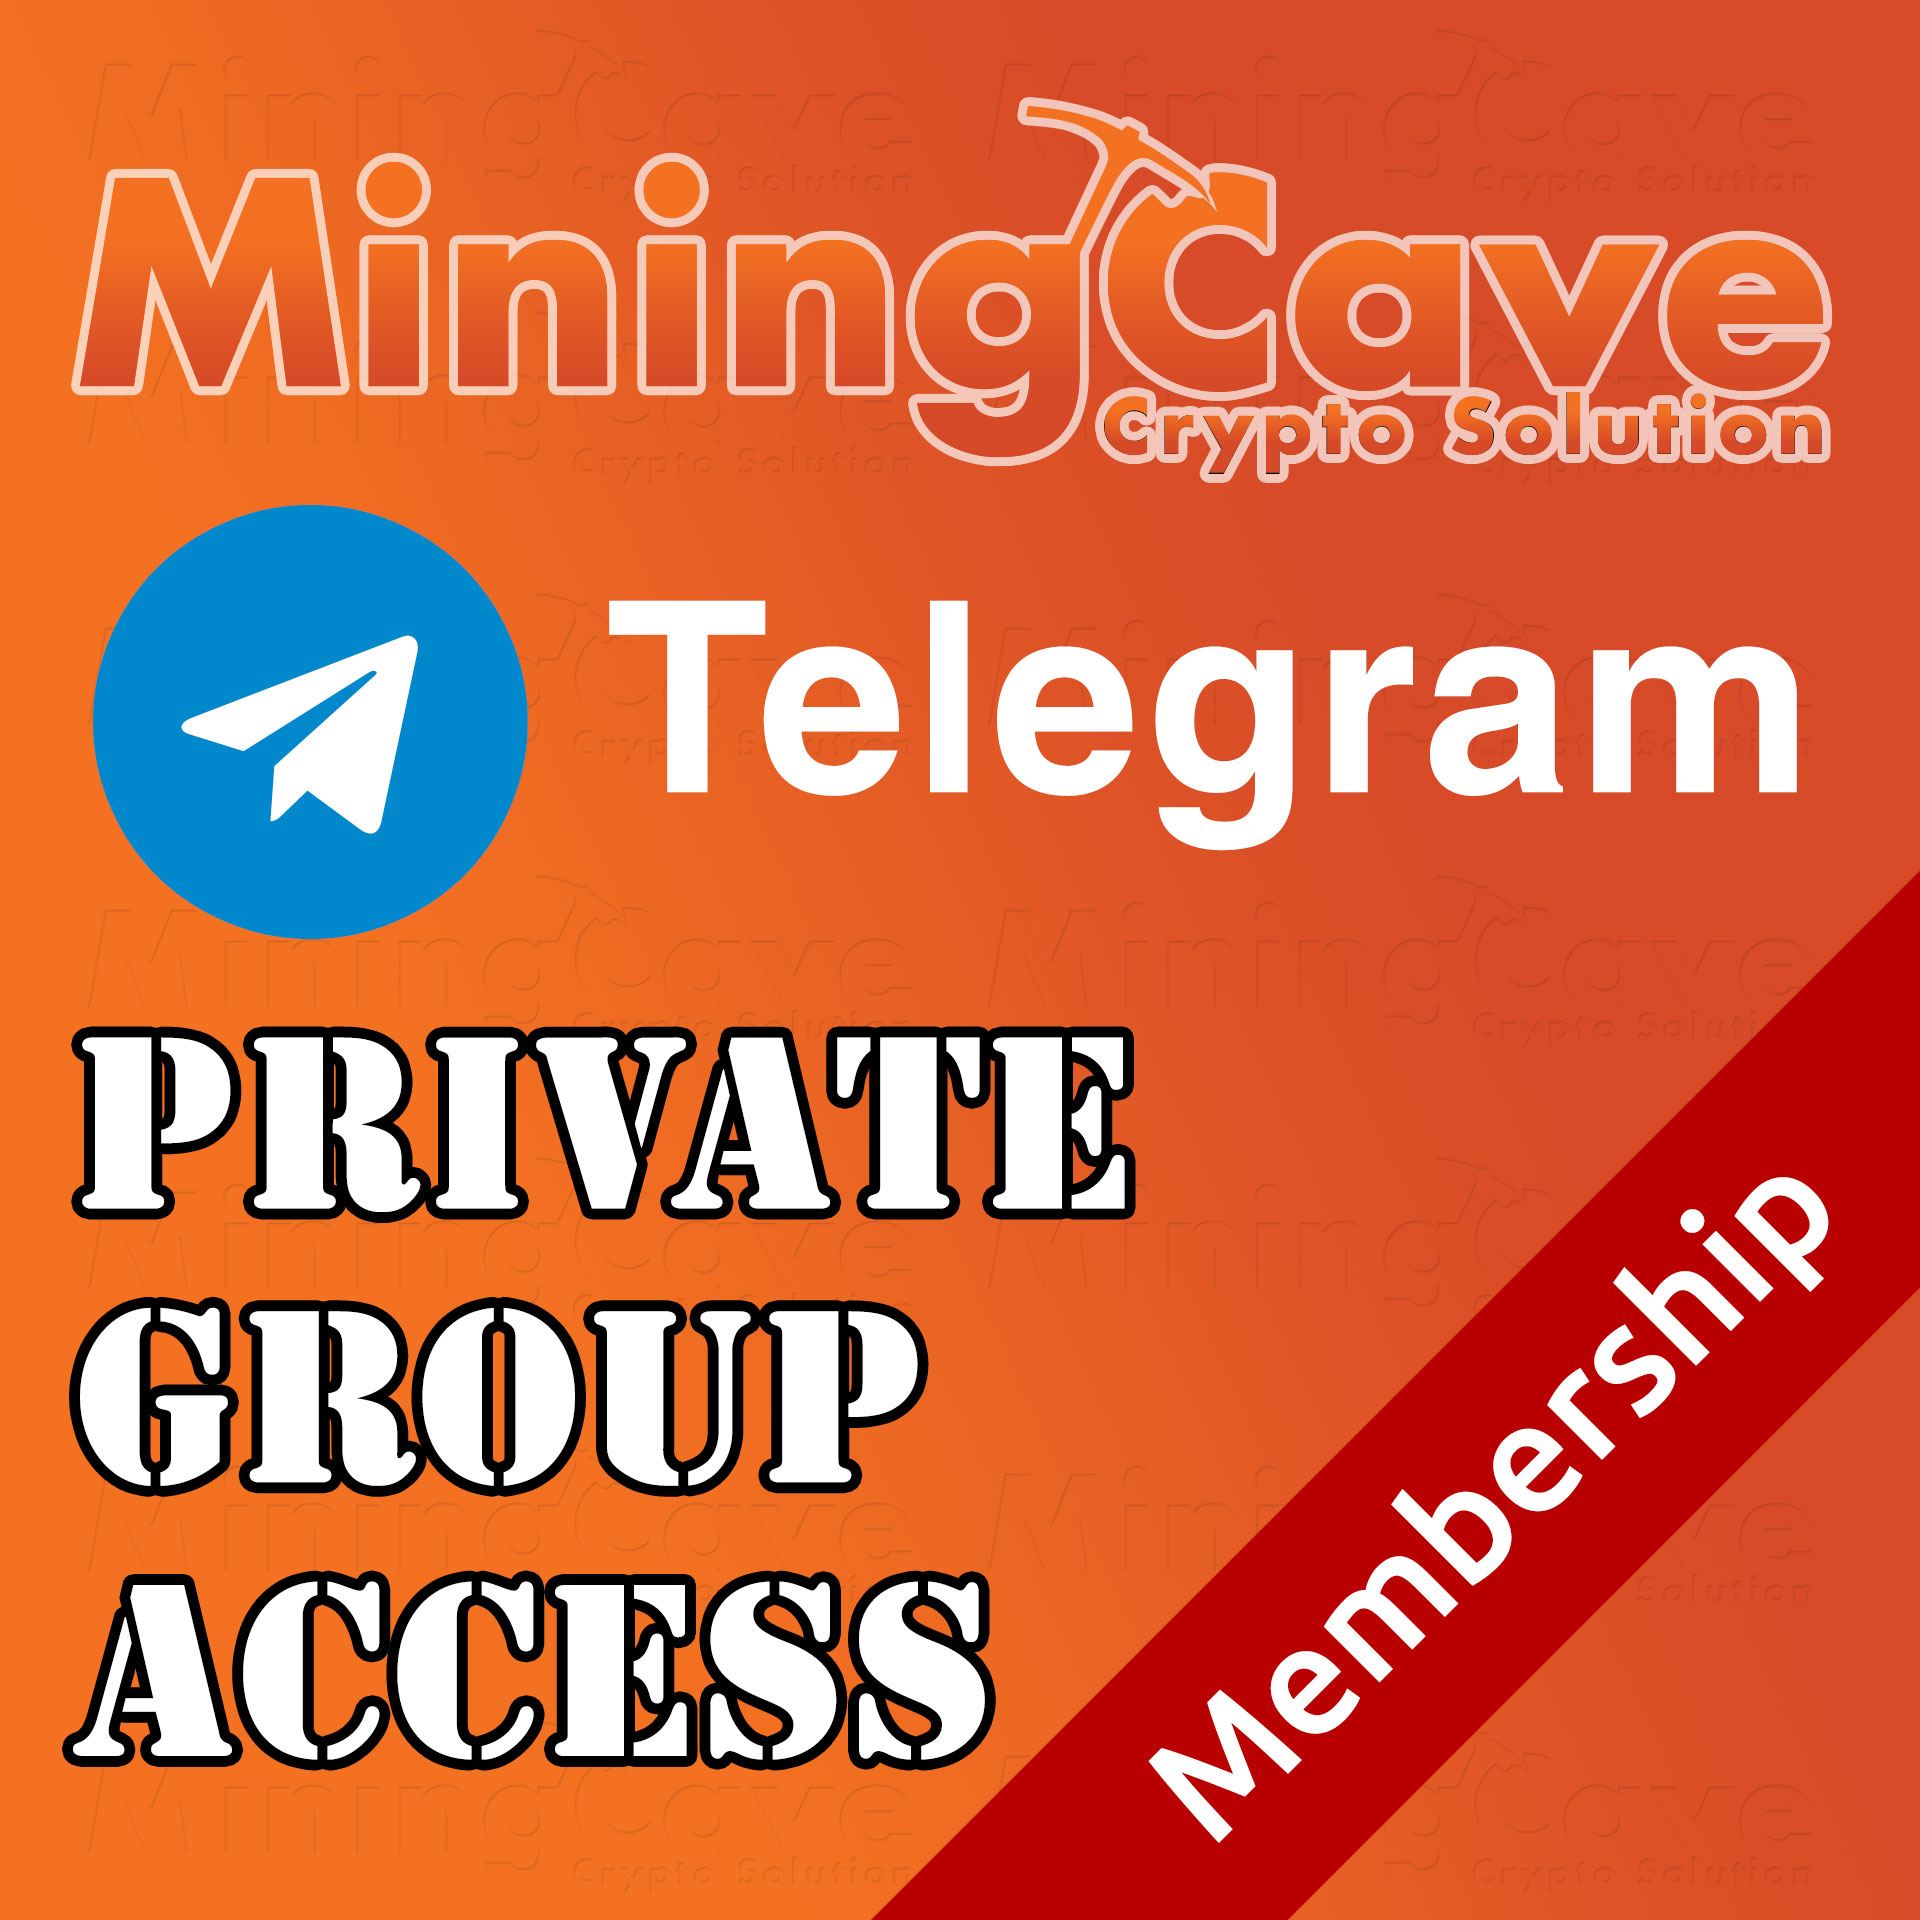 Hextracoin telegram group homes : Funfair coin mining pool hub